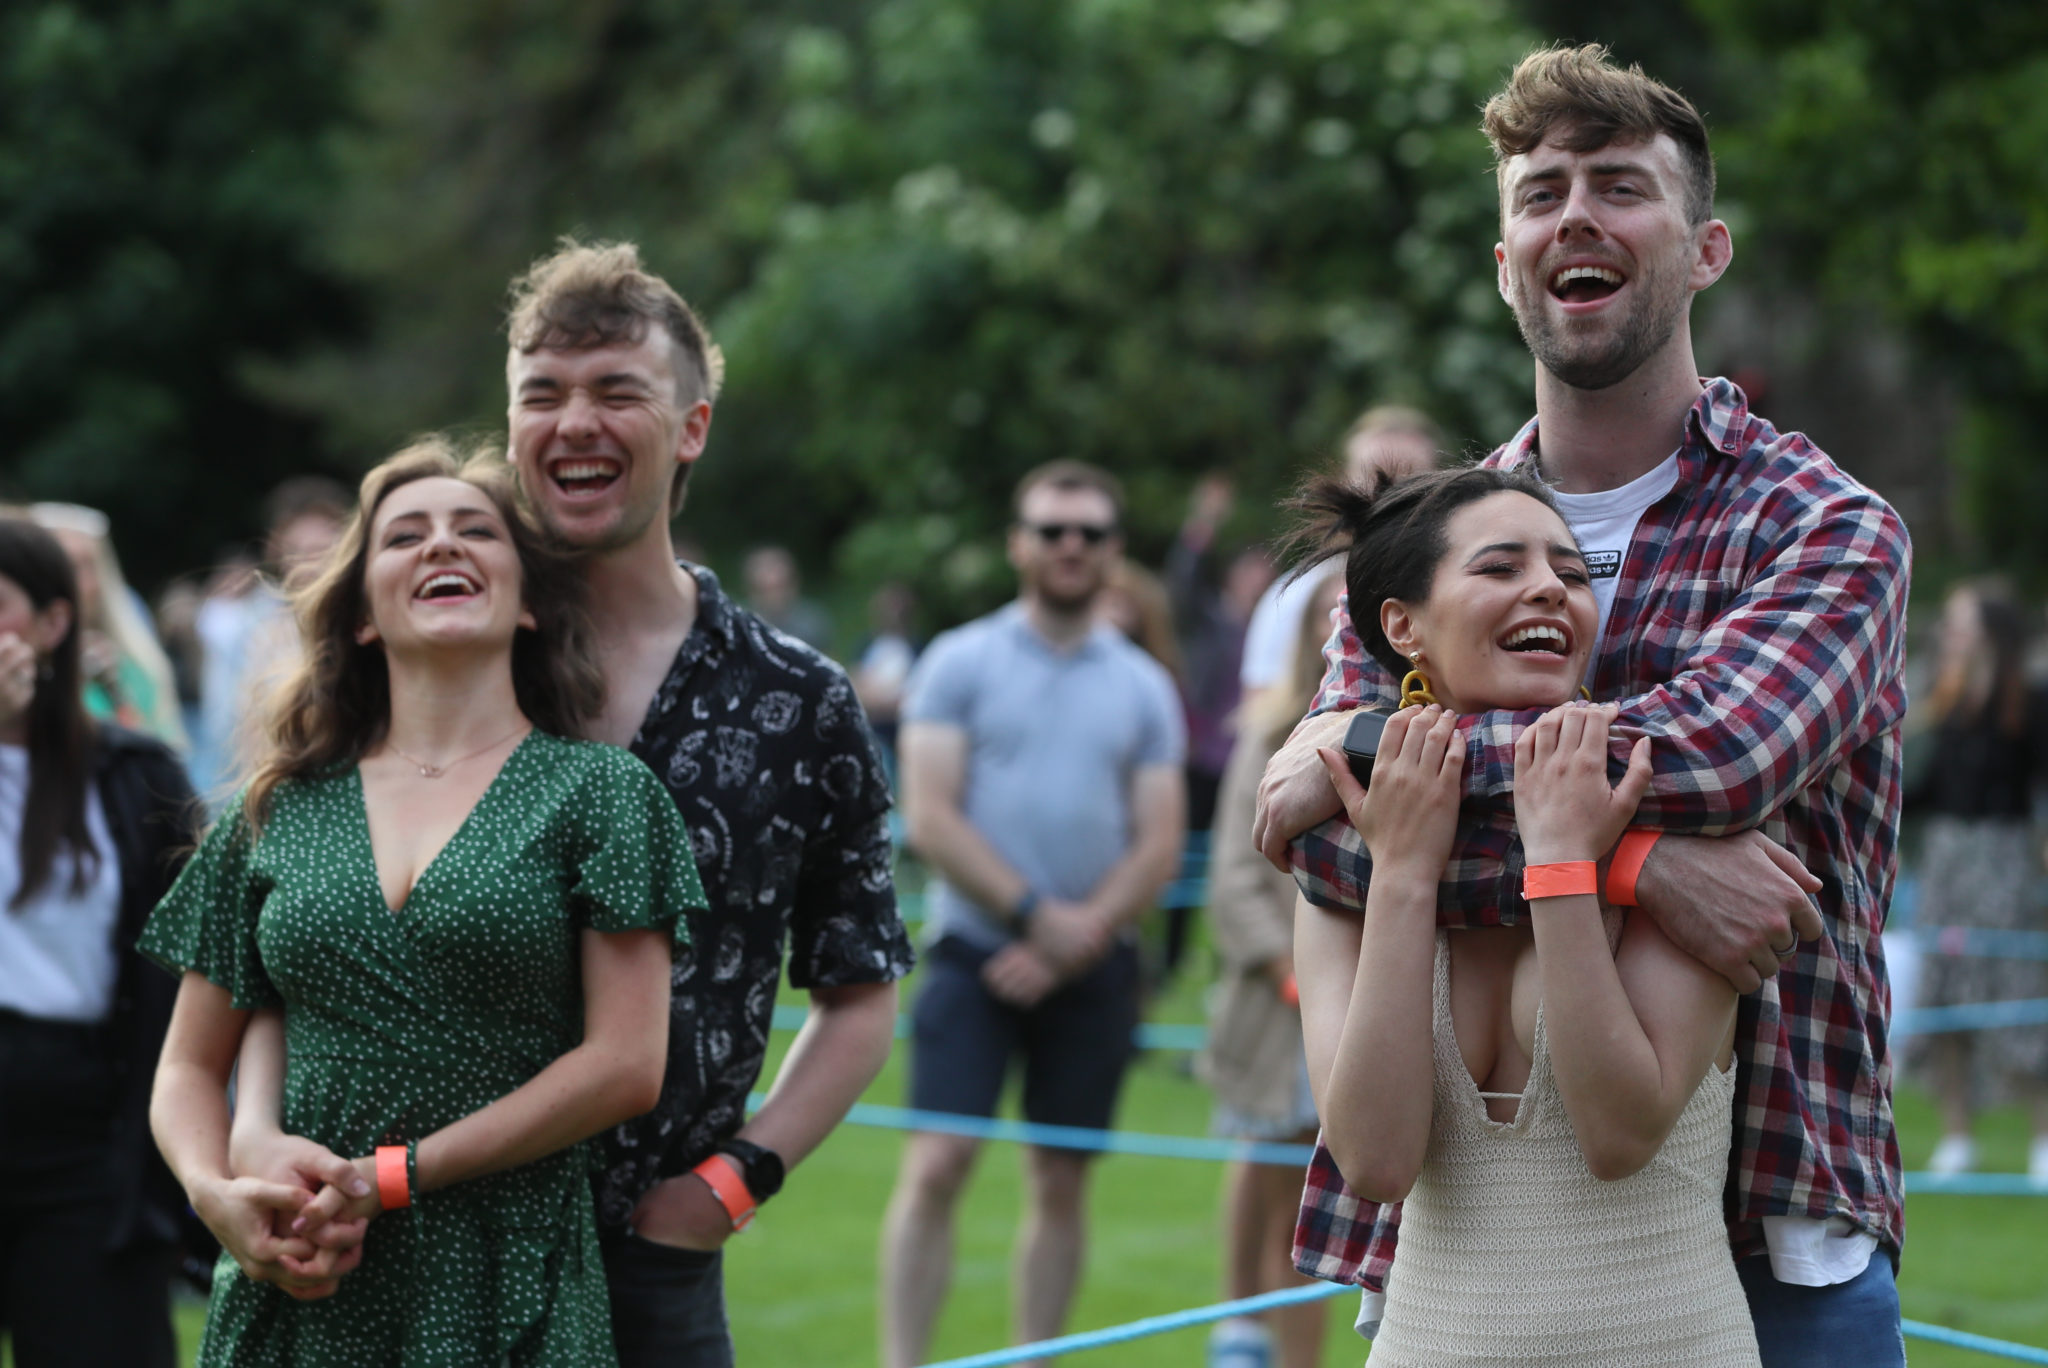 People watch James Vincent McMorrow on stage at Iveagh Gardens during Ireland's first major live gig since the pandemic began